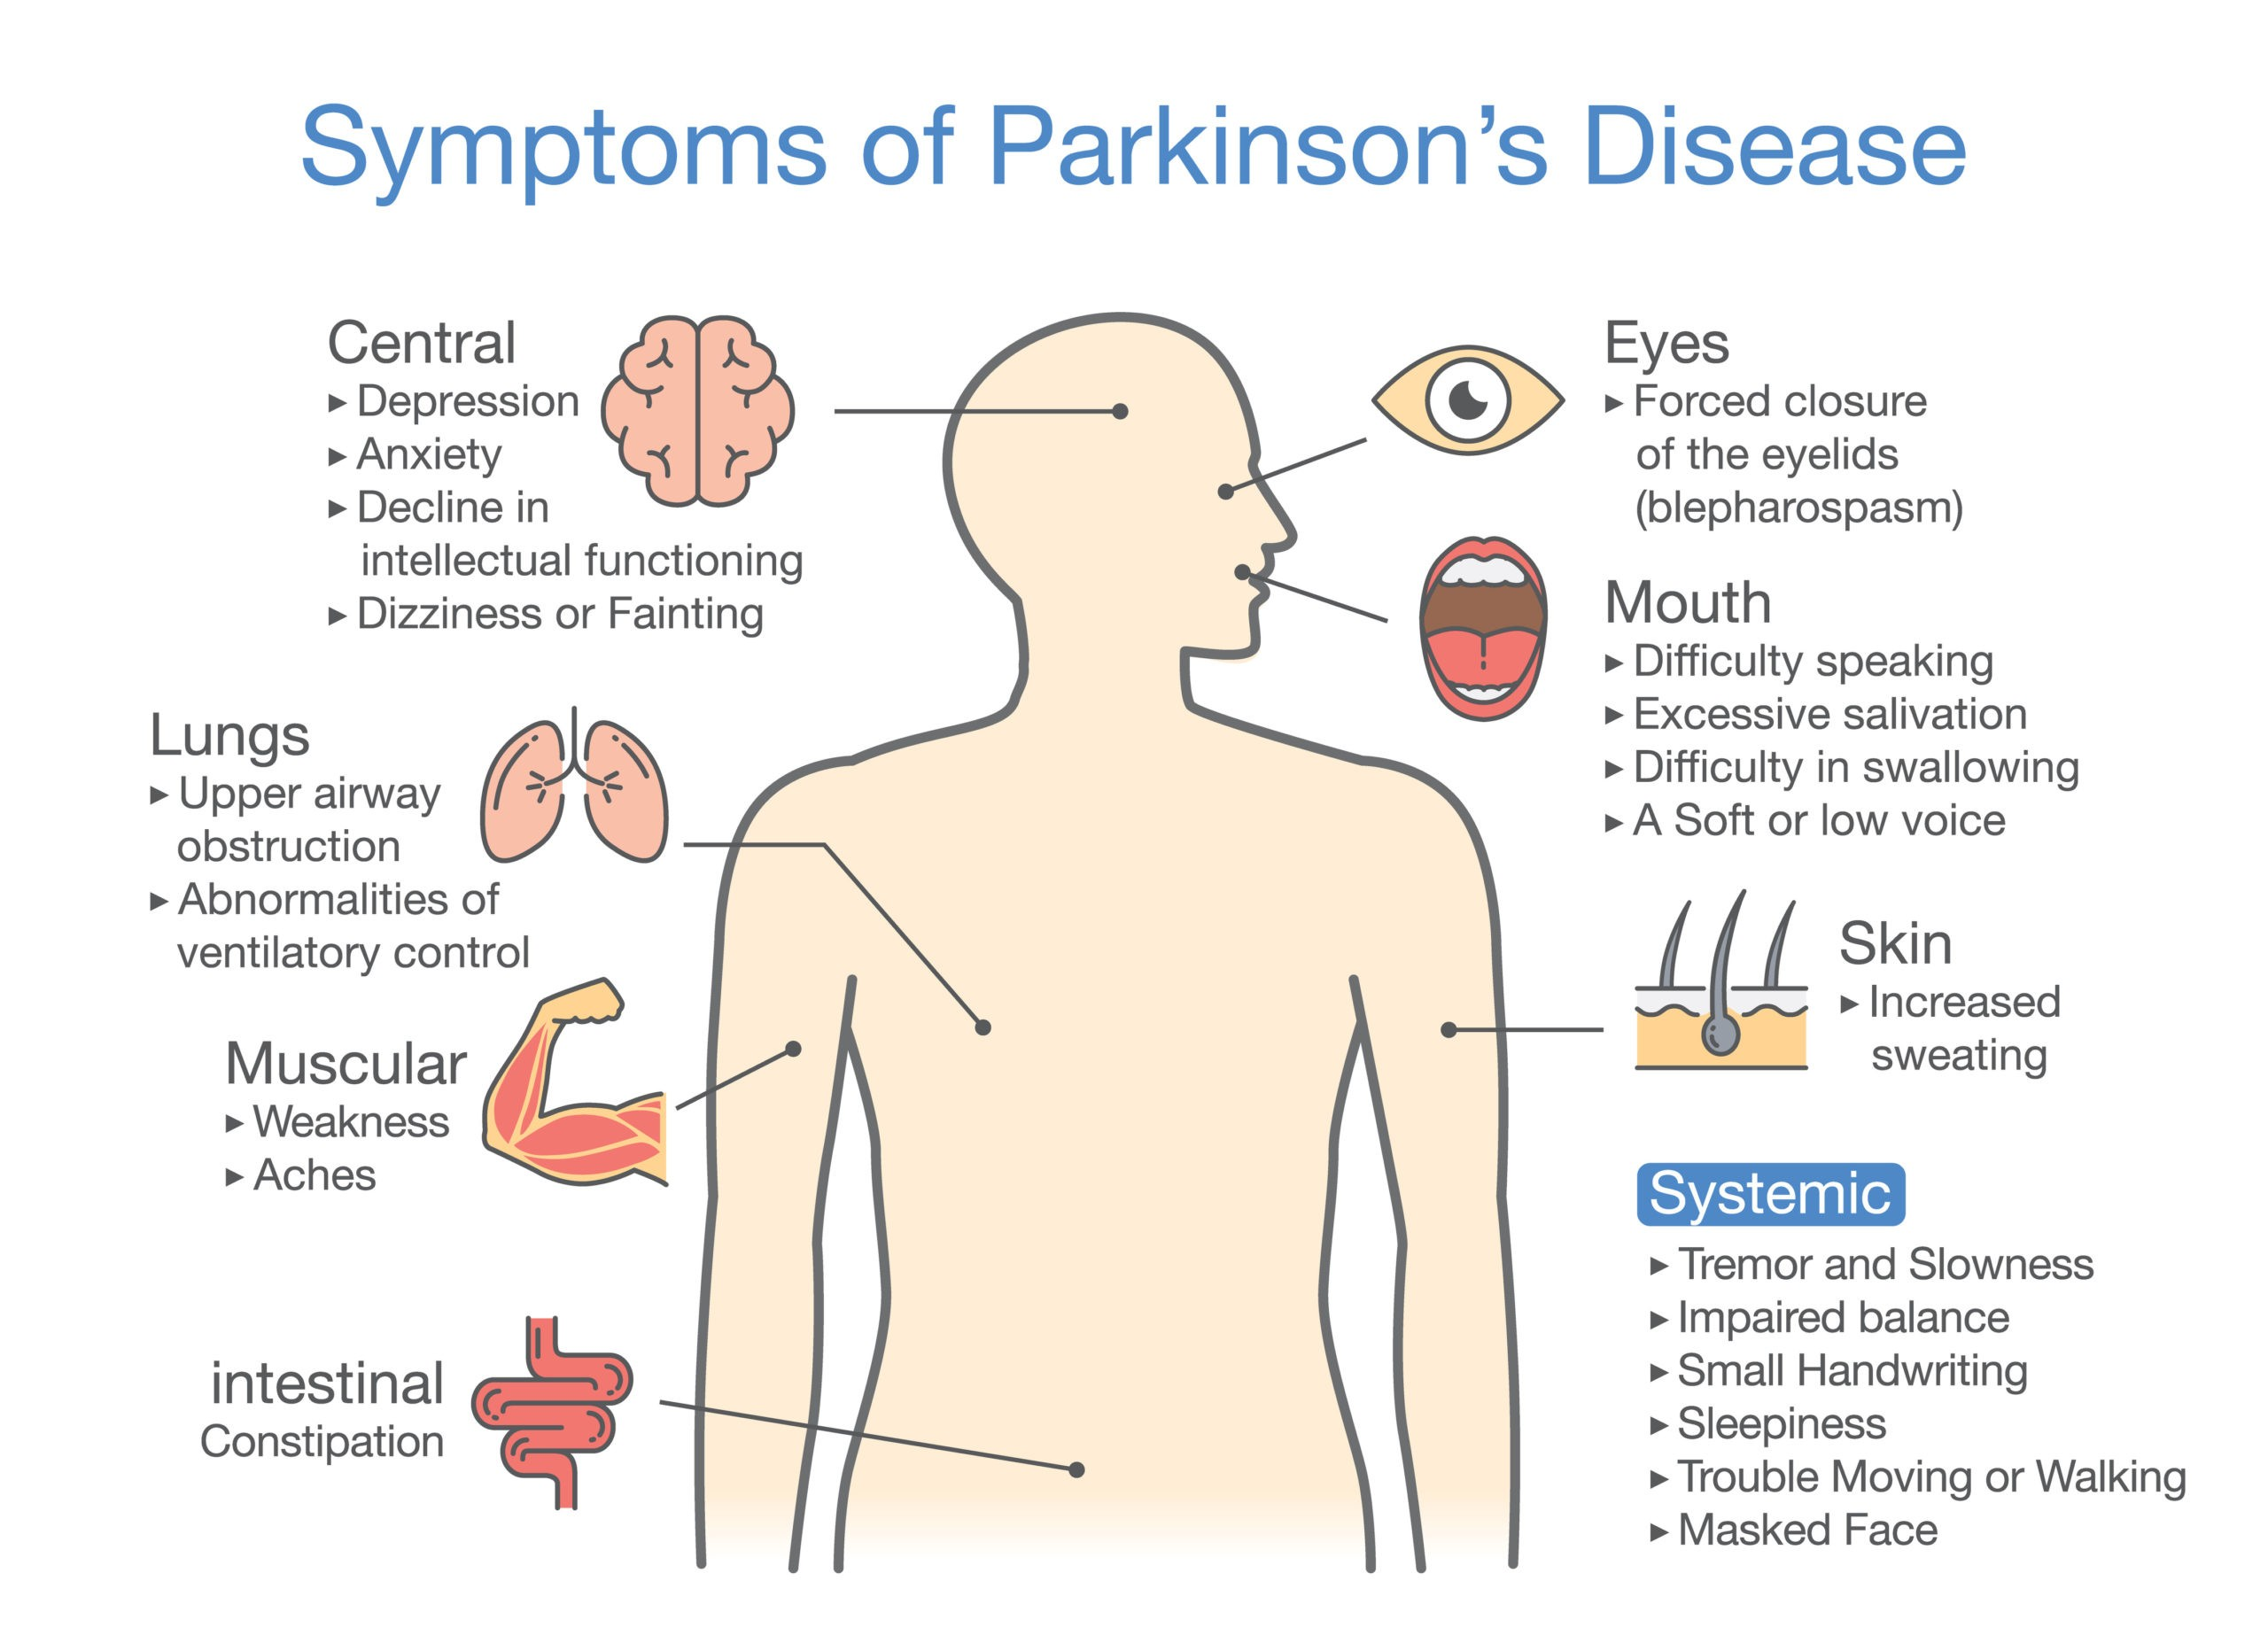 symptoms of parkinson's disease include Urinary dysfunction Constipation Swallowing problems Mood disorders Cognitive deficits, Rigidity Tremors Delayed movement Poor balance